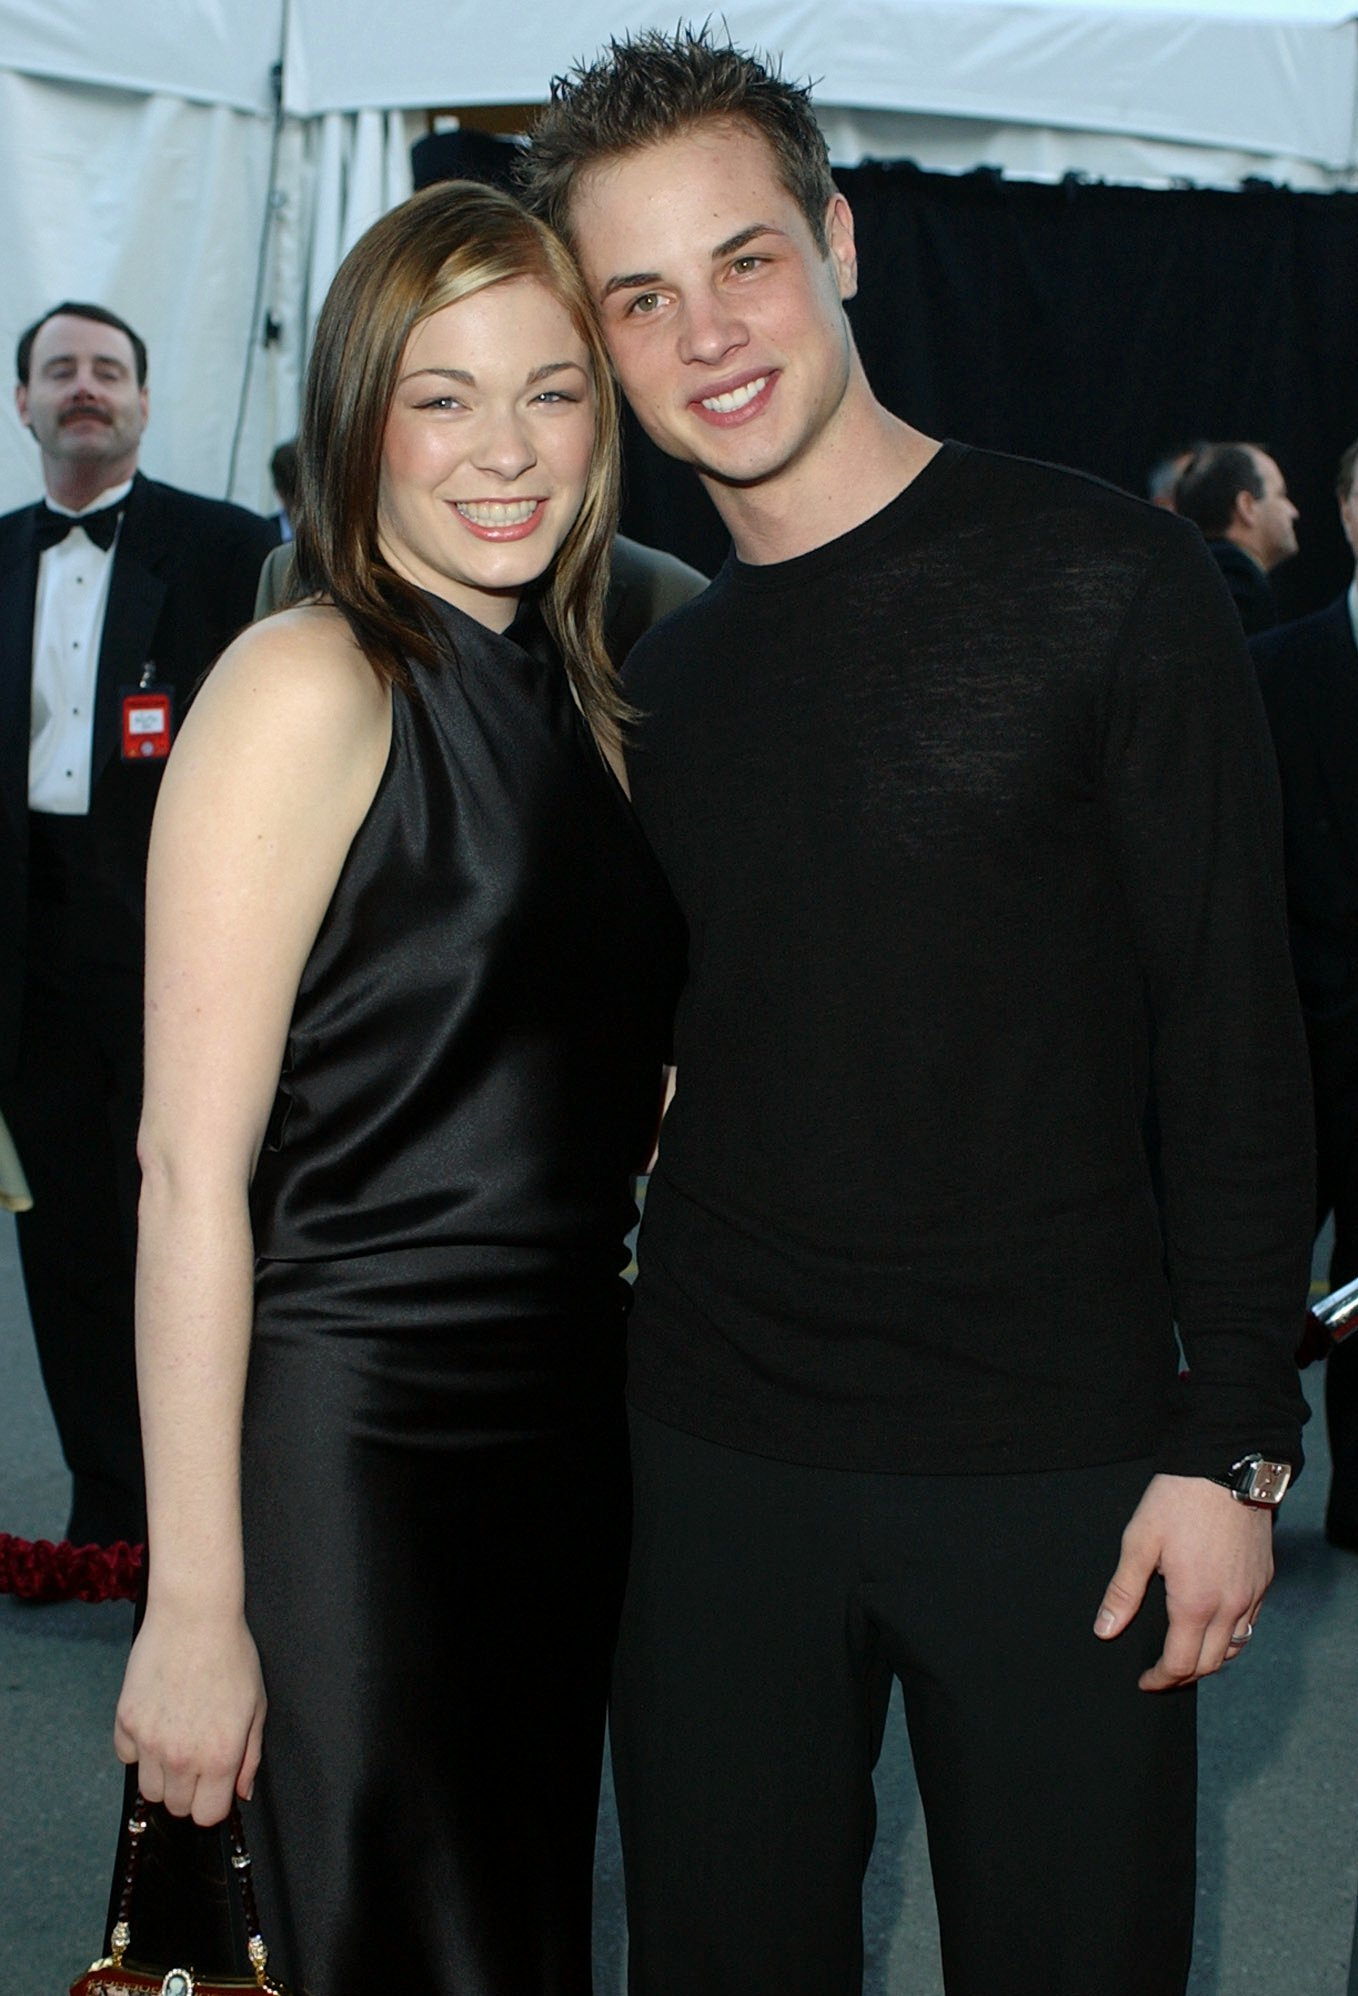 LeAnn Rimes arrives with her fiancee Dean Sheremet at the 29th American Music Awards in Los Angeles on Jan. 9, 2002.